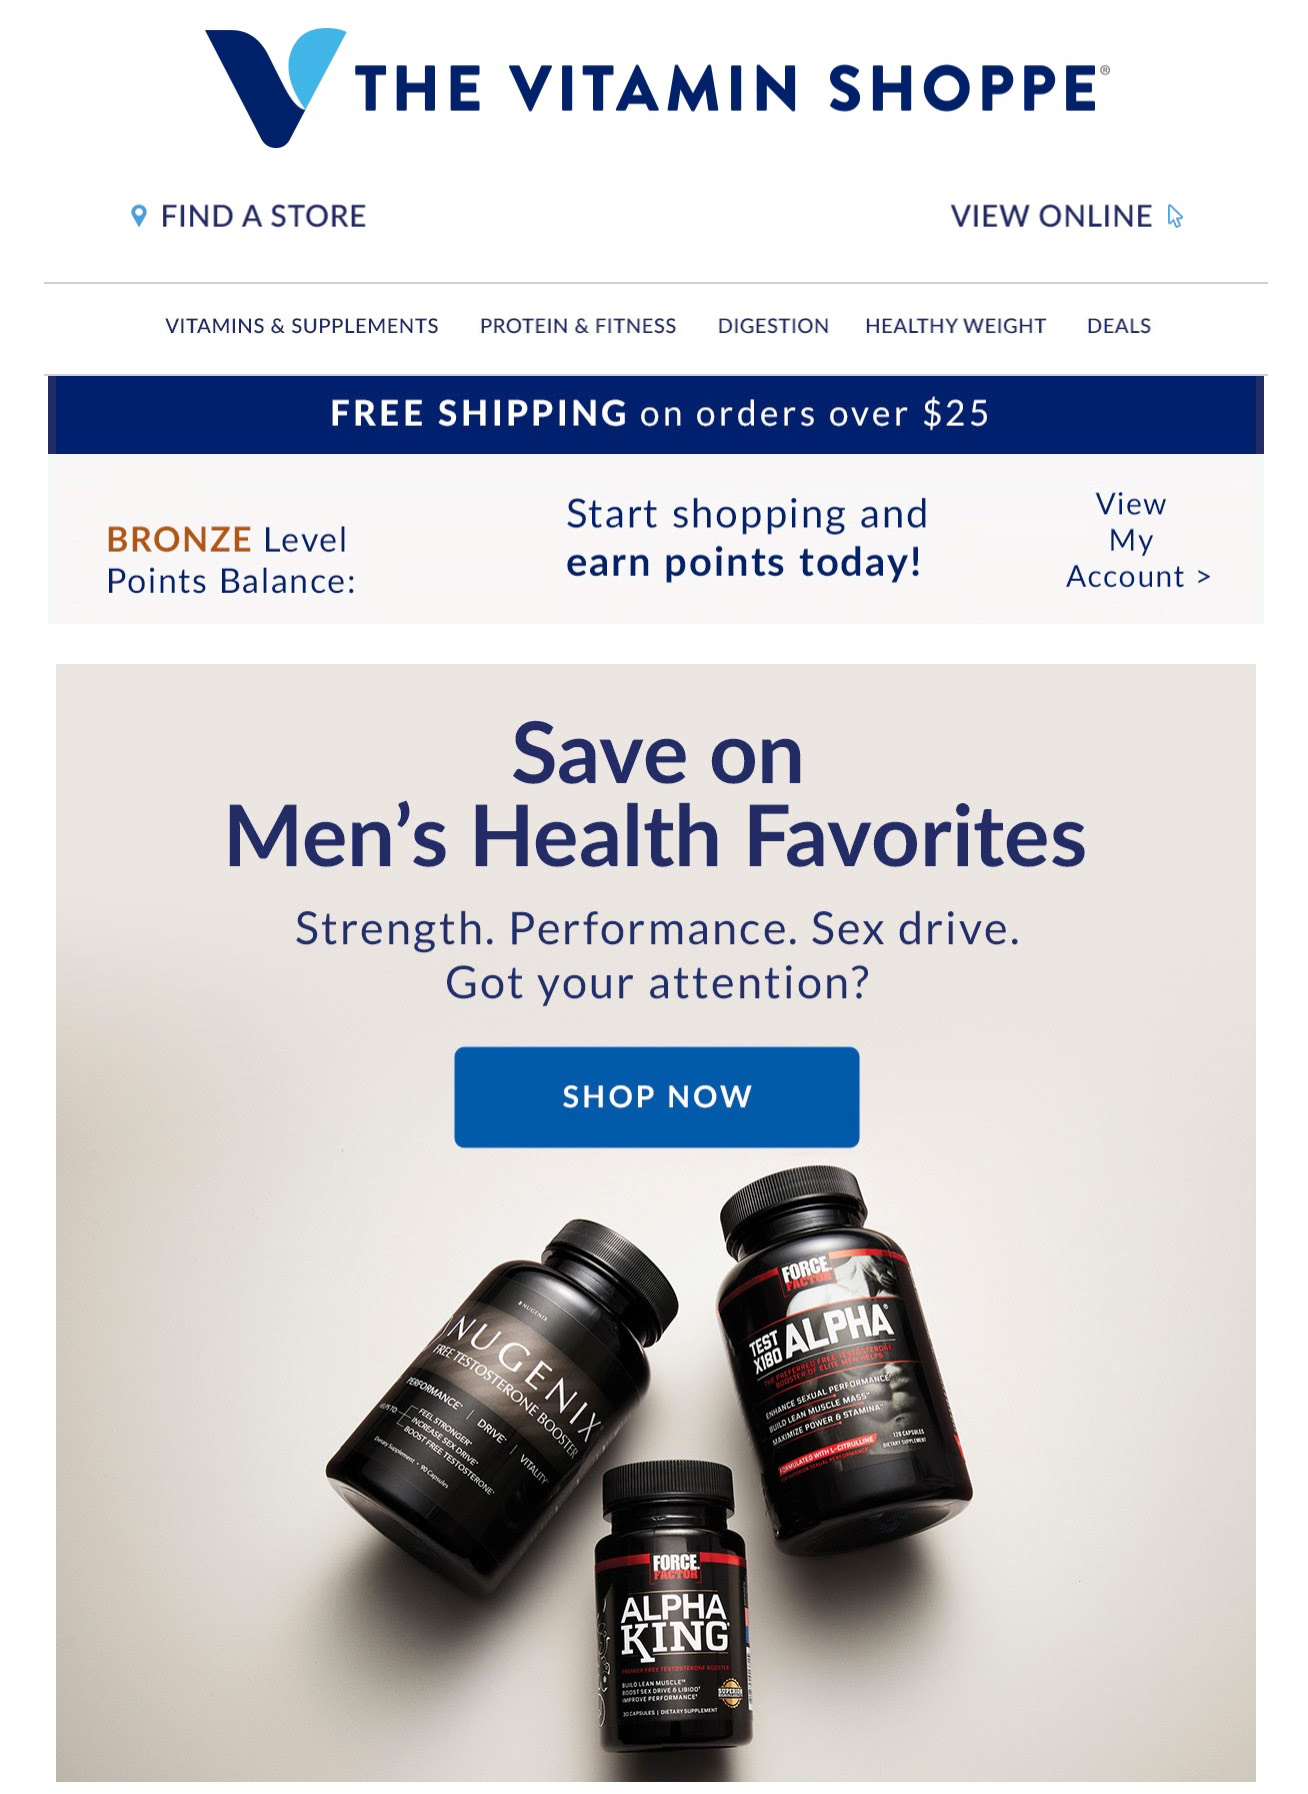 A segmented email to men from the Vitamin Shoppe.